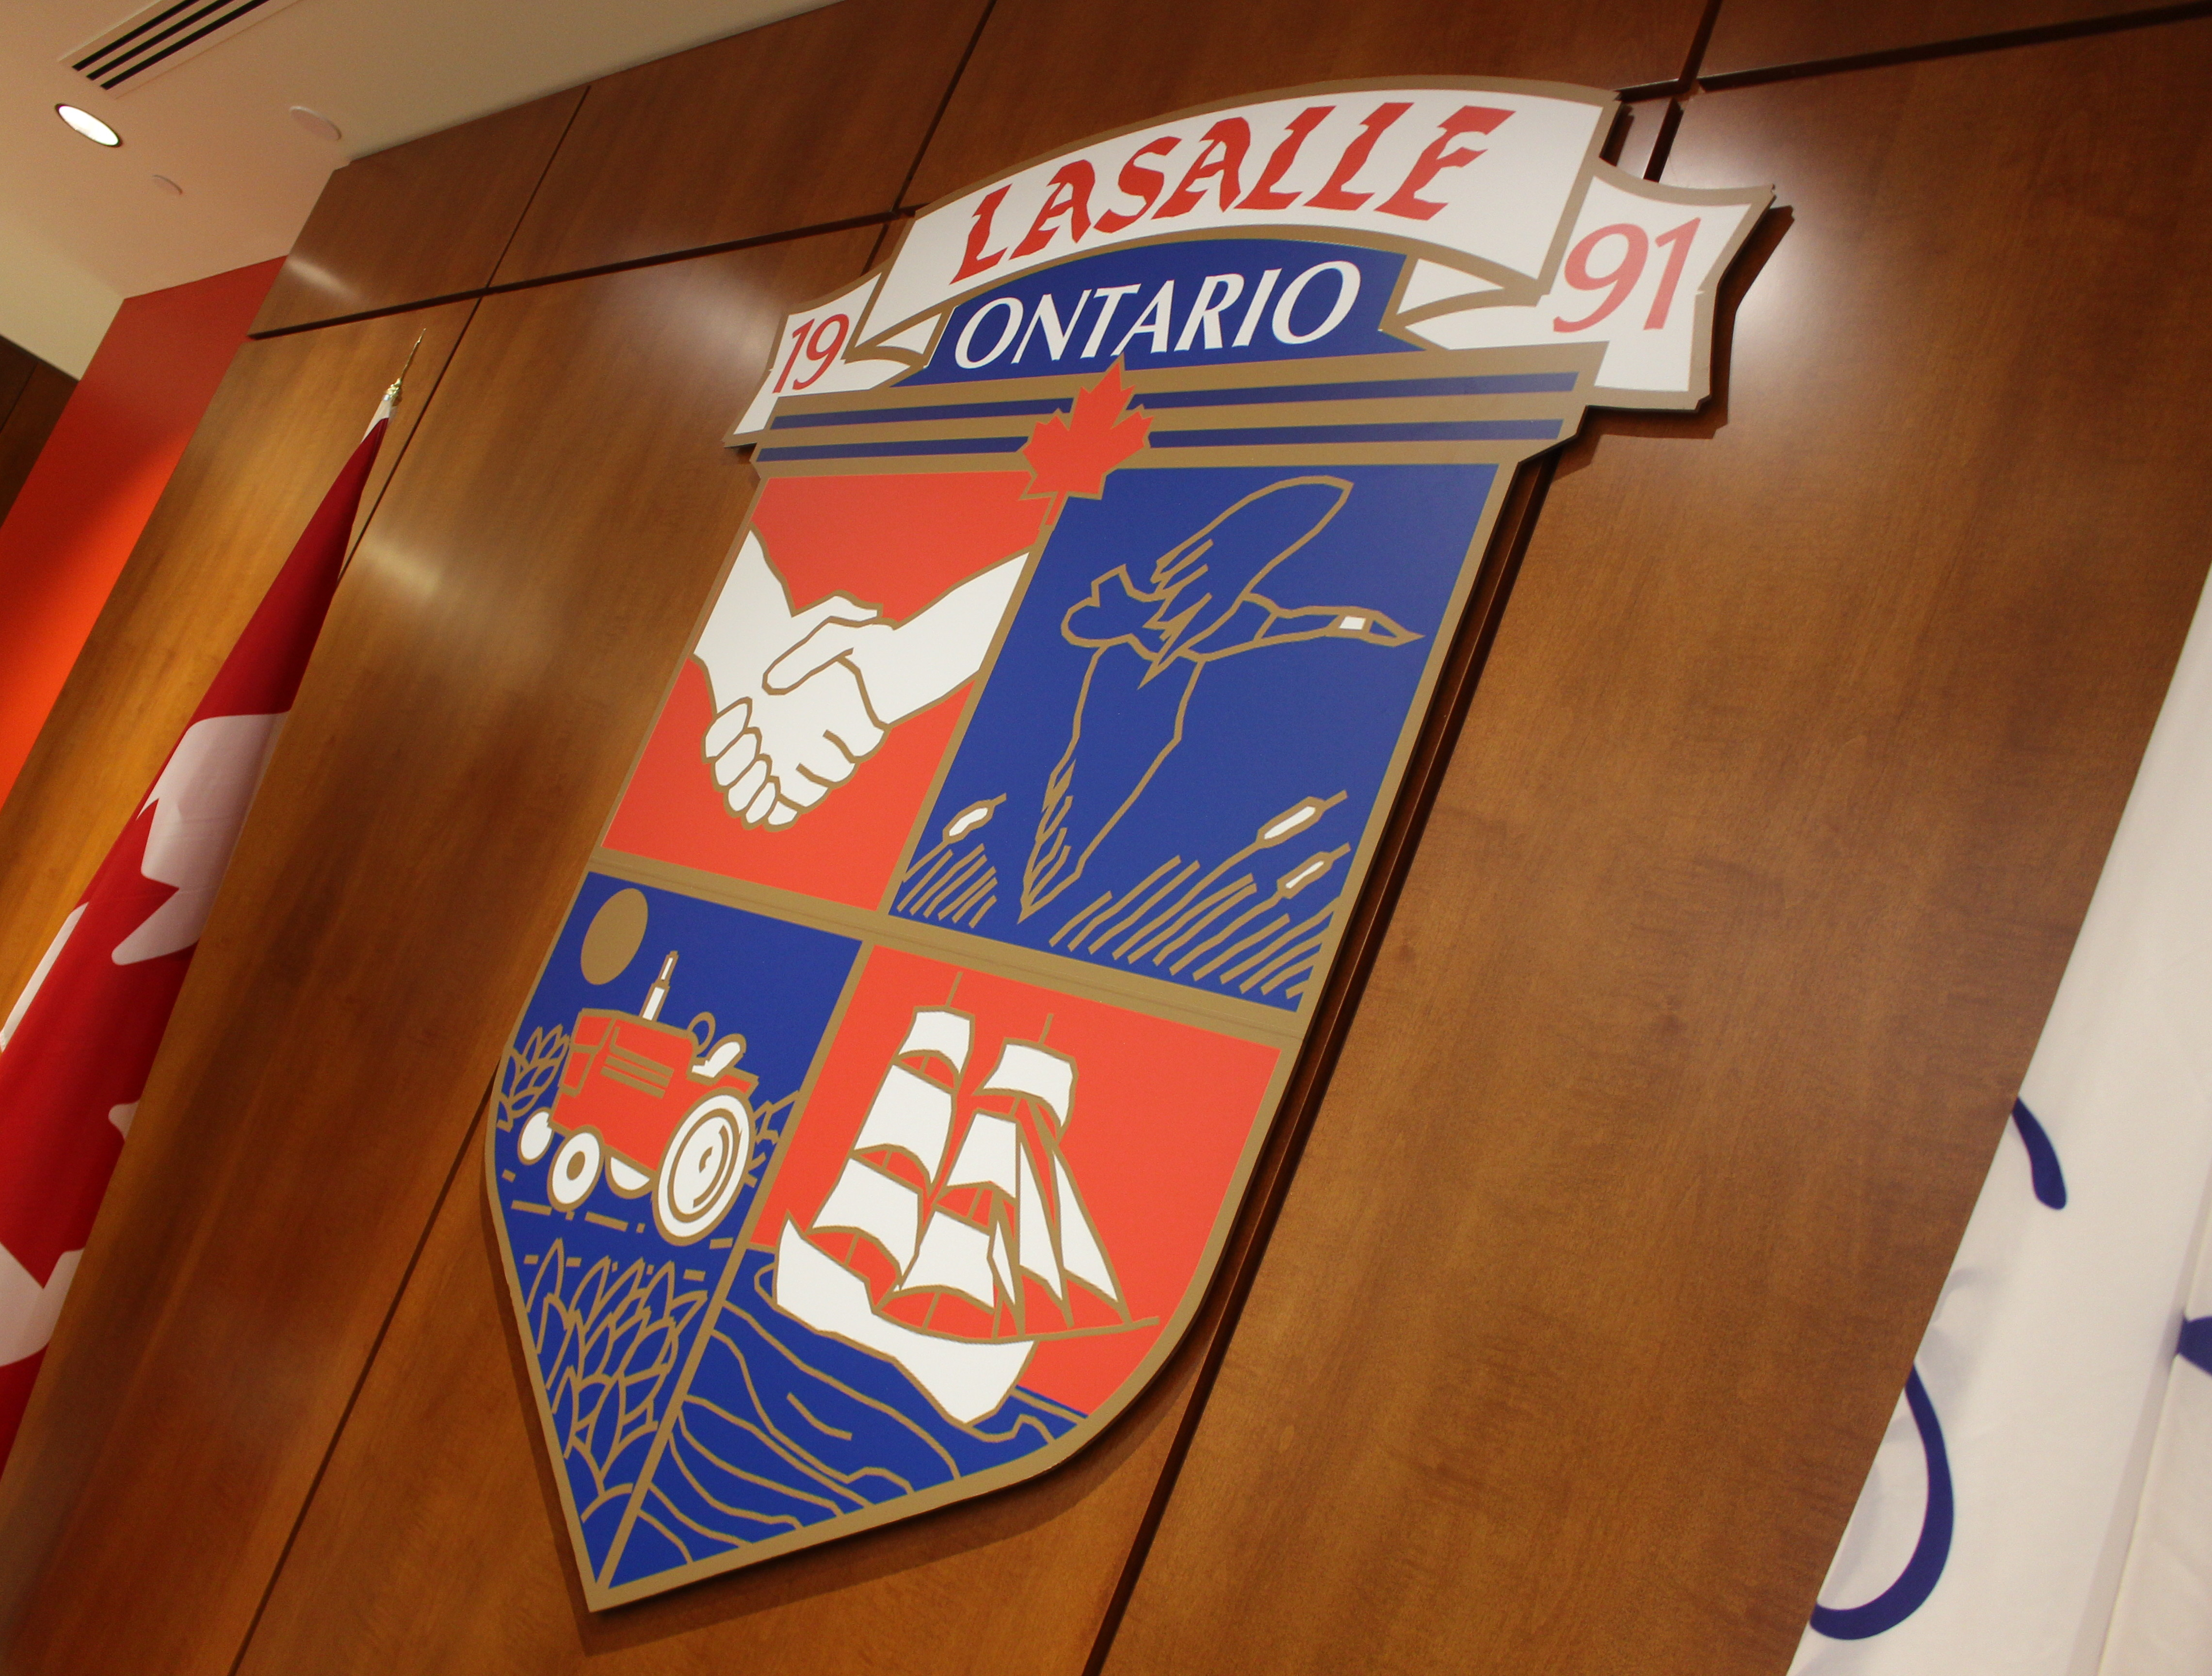 The Town of LaSalle's coat of arms hanging at LaSalle Town Hall. (Photo by Mike Vlasveld)